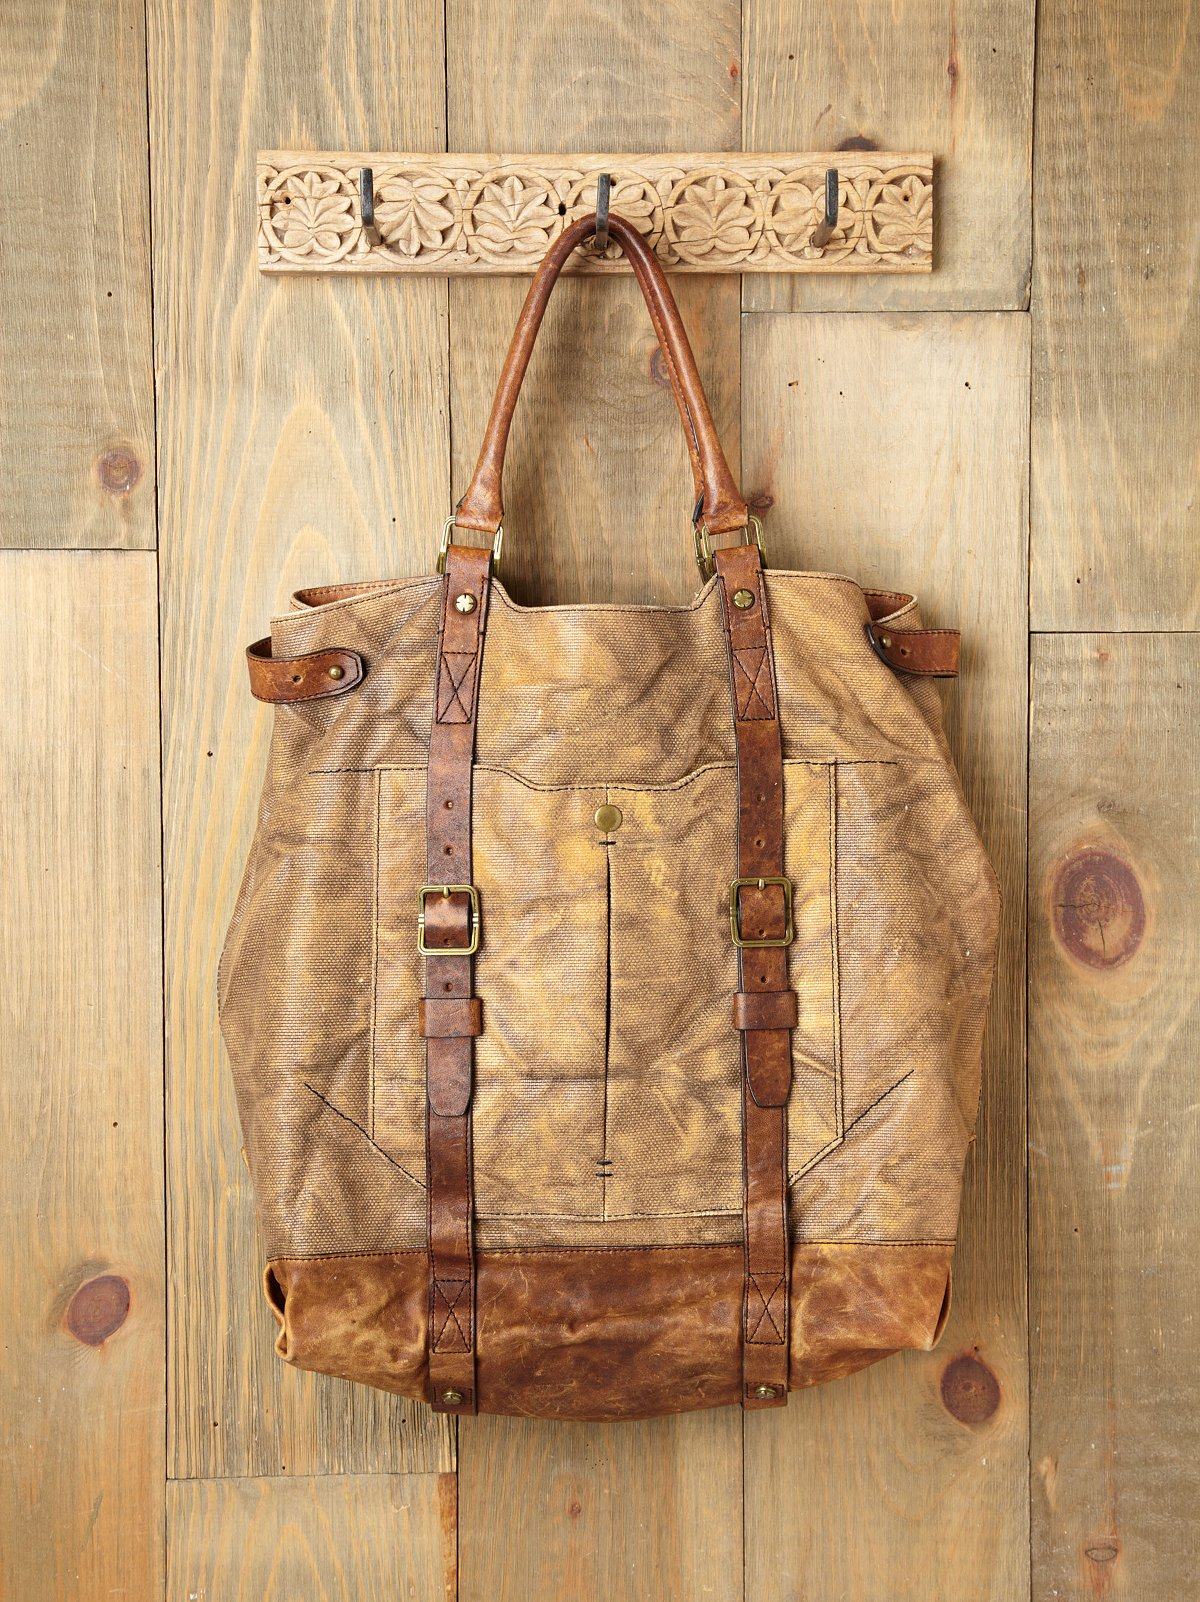 Jack Distressed Tote by A. Toy